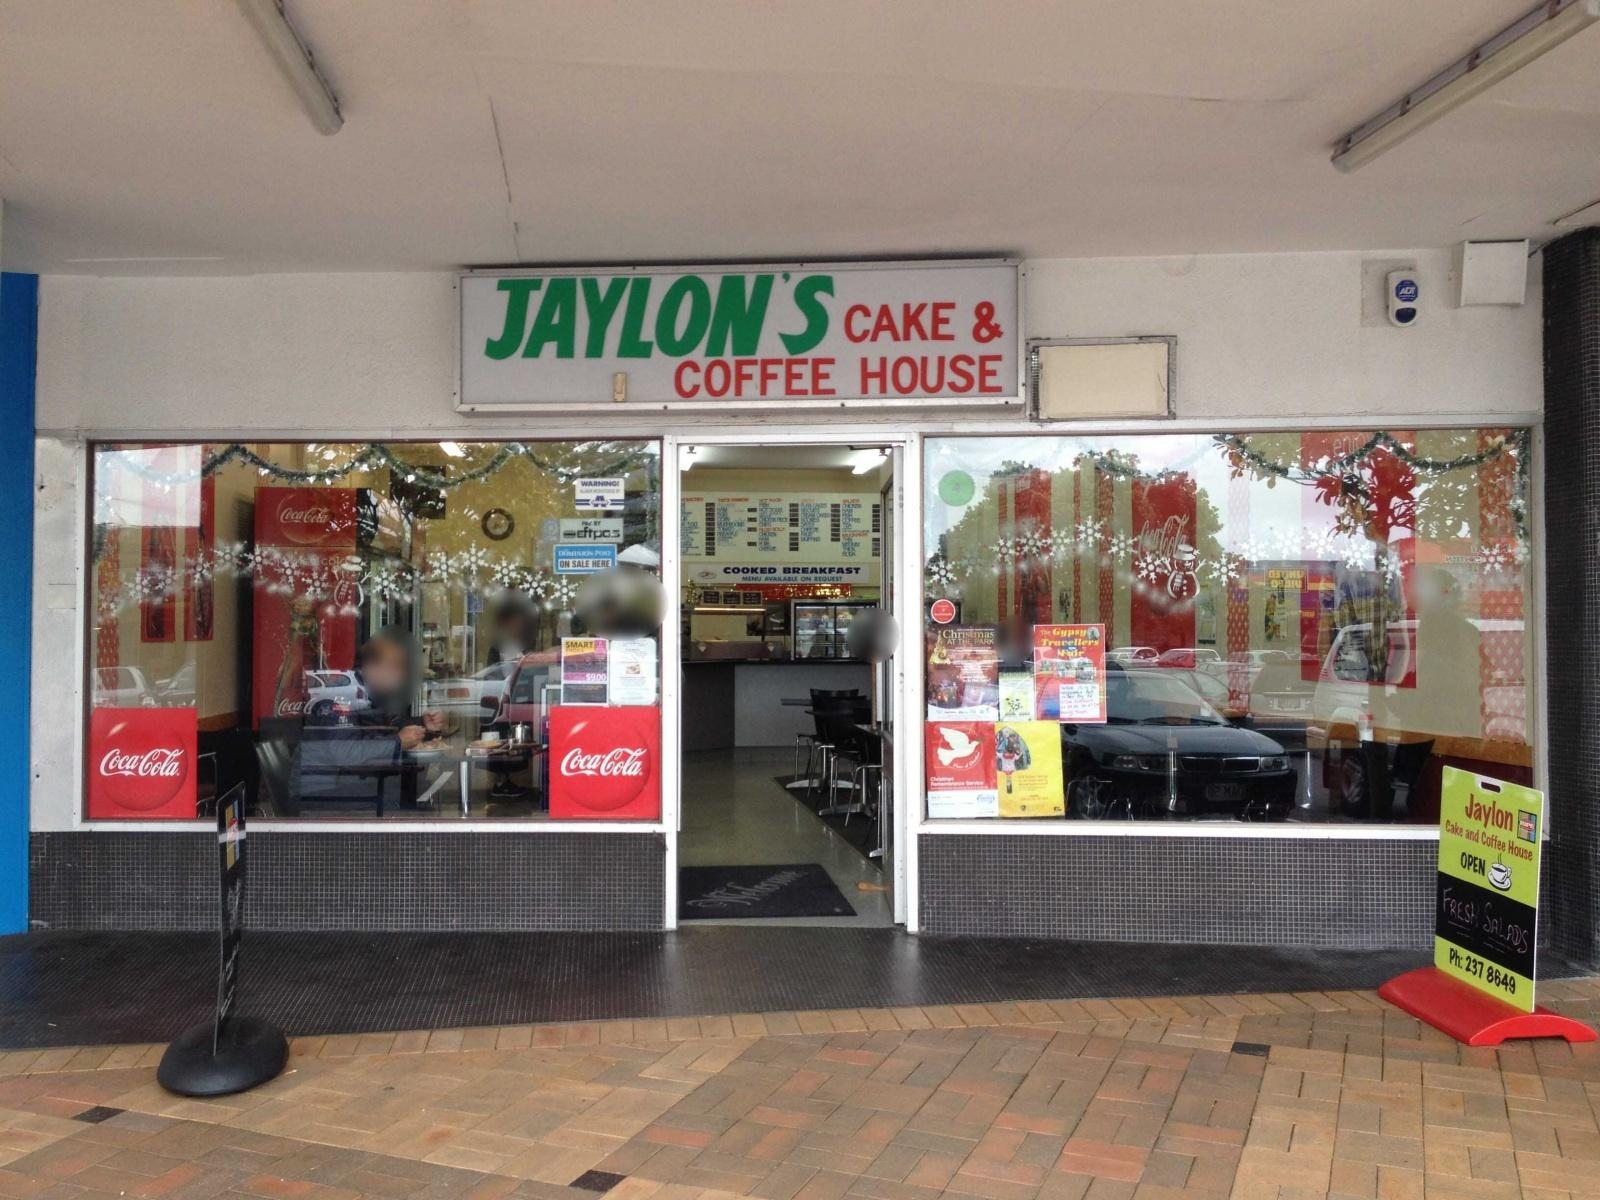 Jaylons Cake & Coffee House